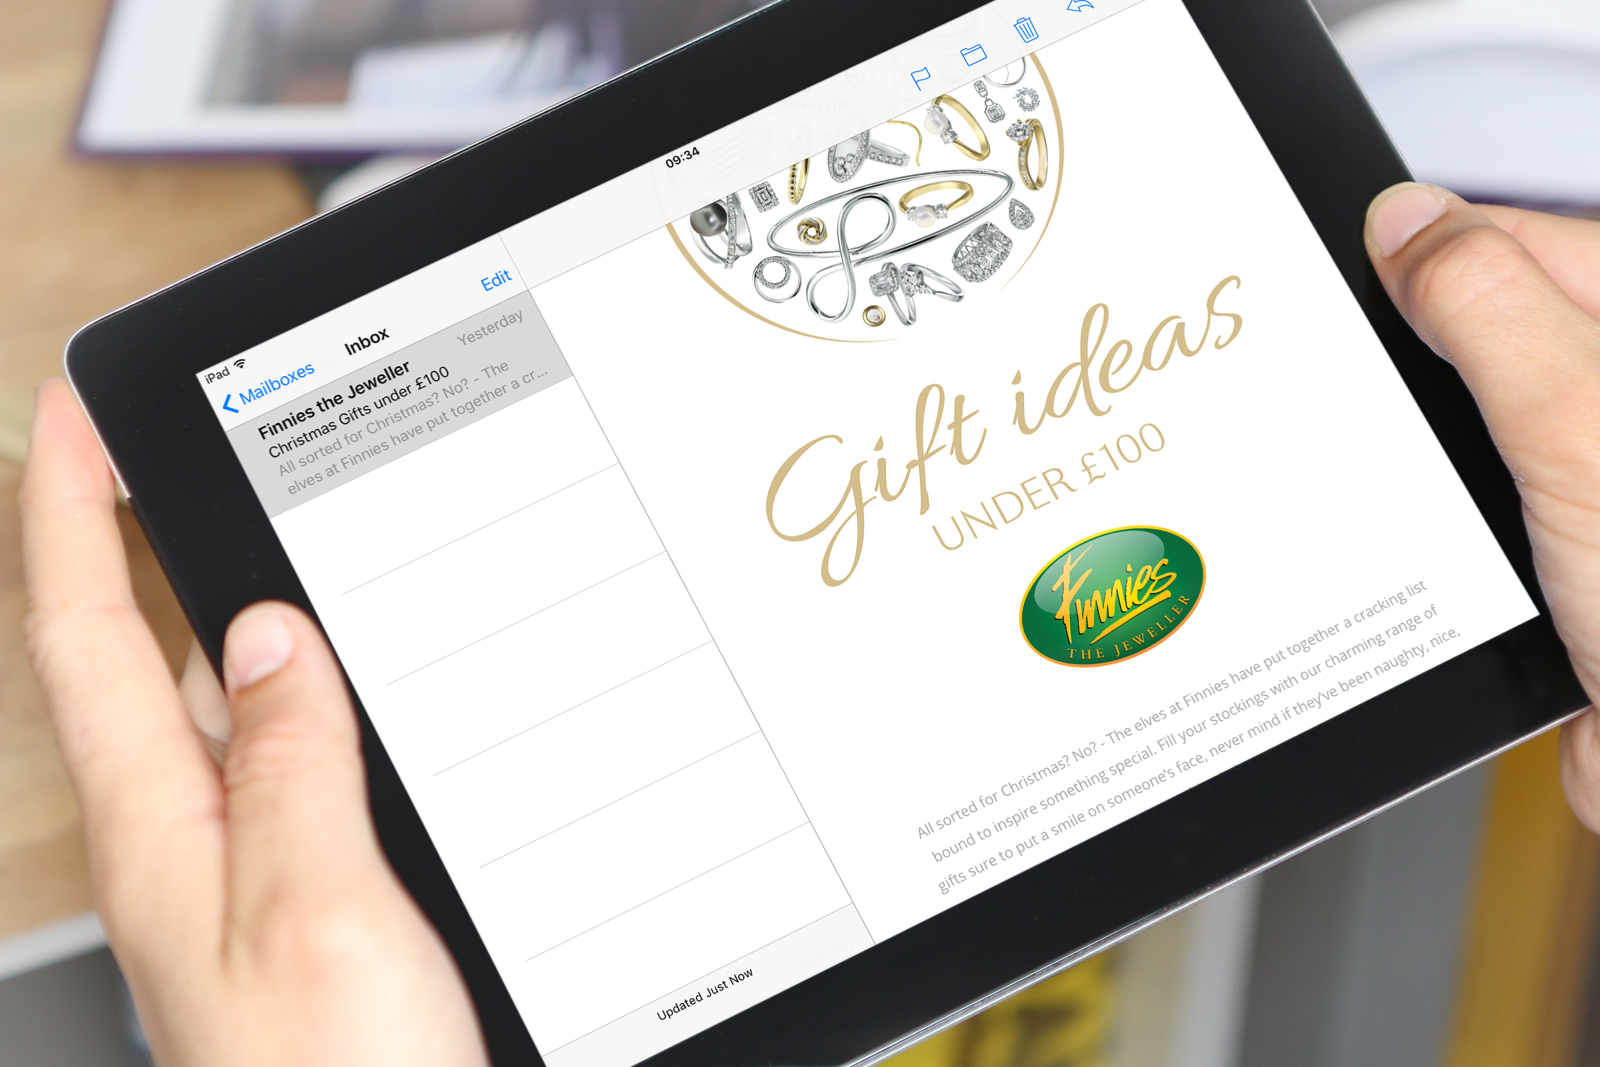 Web Design and production of 2018 Christmas campaign and competition microsite for Finnies the Jewellers, Aberdeen